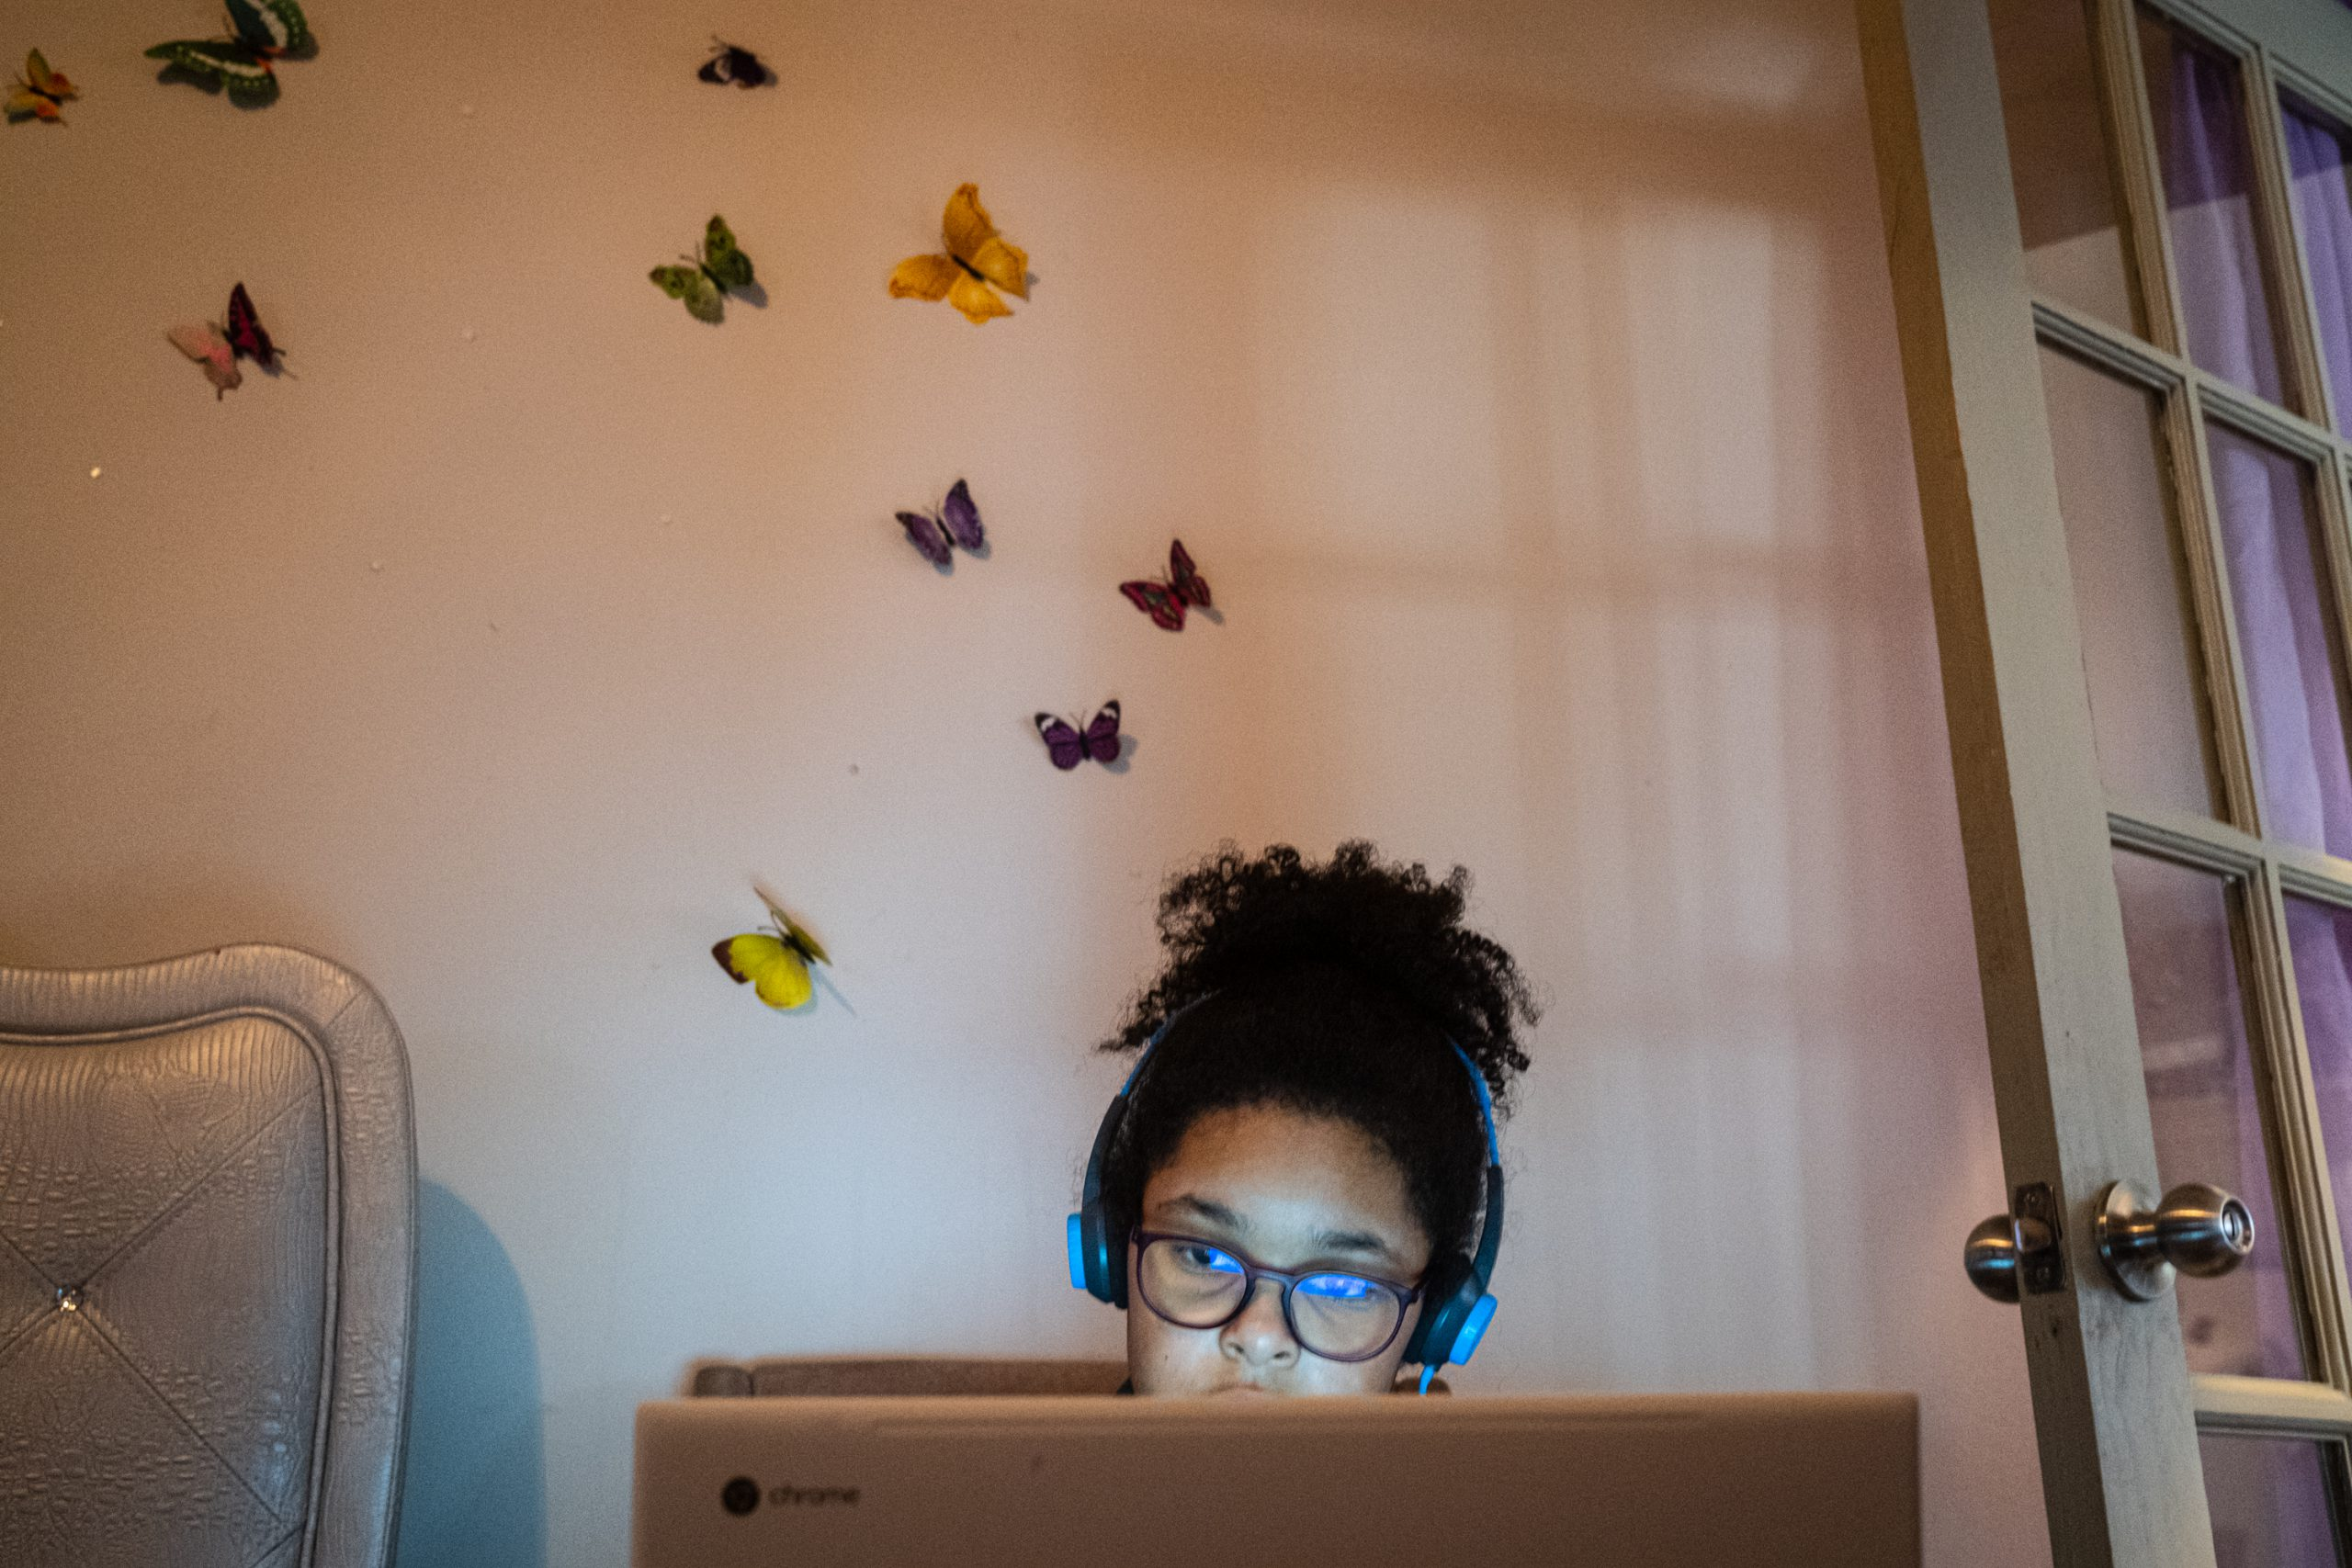 A girl looks at her computer in a room with butterfly stickers on the wall